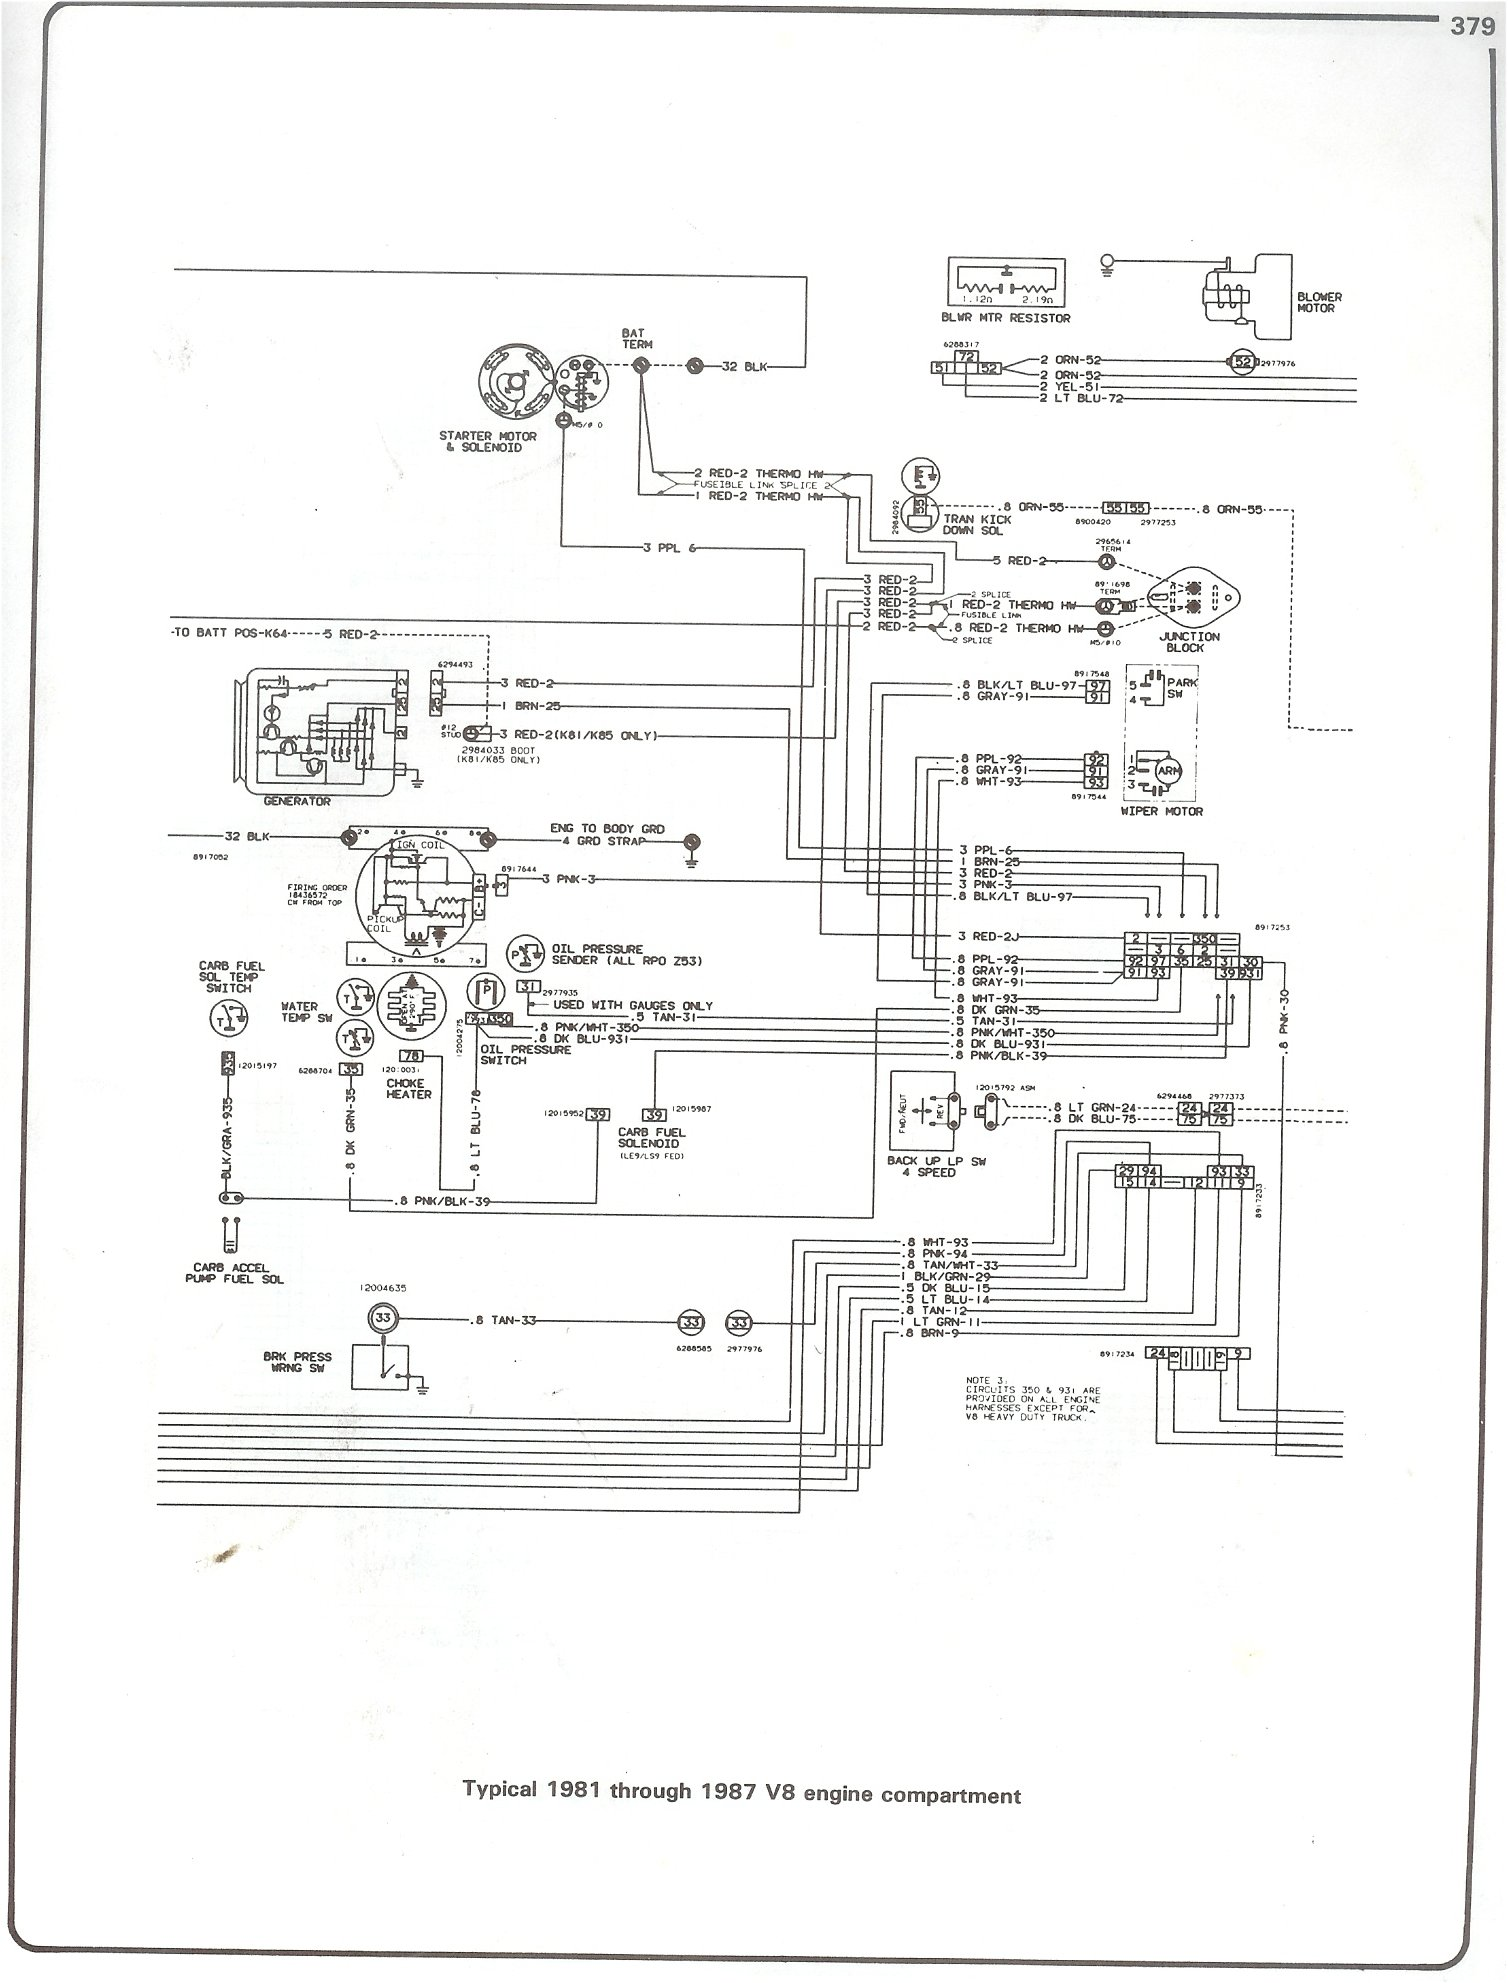 81 87_V8_engine complete 73 87 wiring diagrams c10 wiring diagram at panicattacktreatment.co